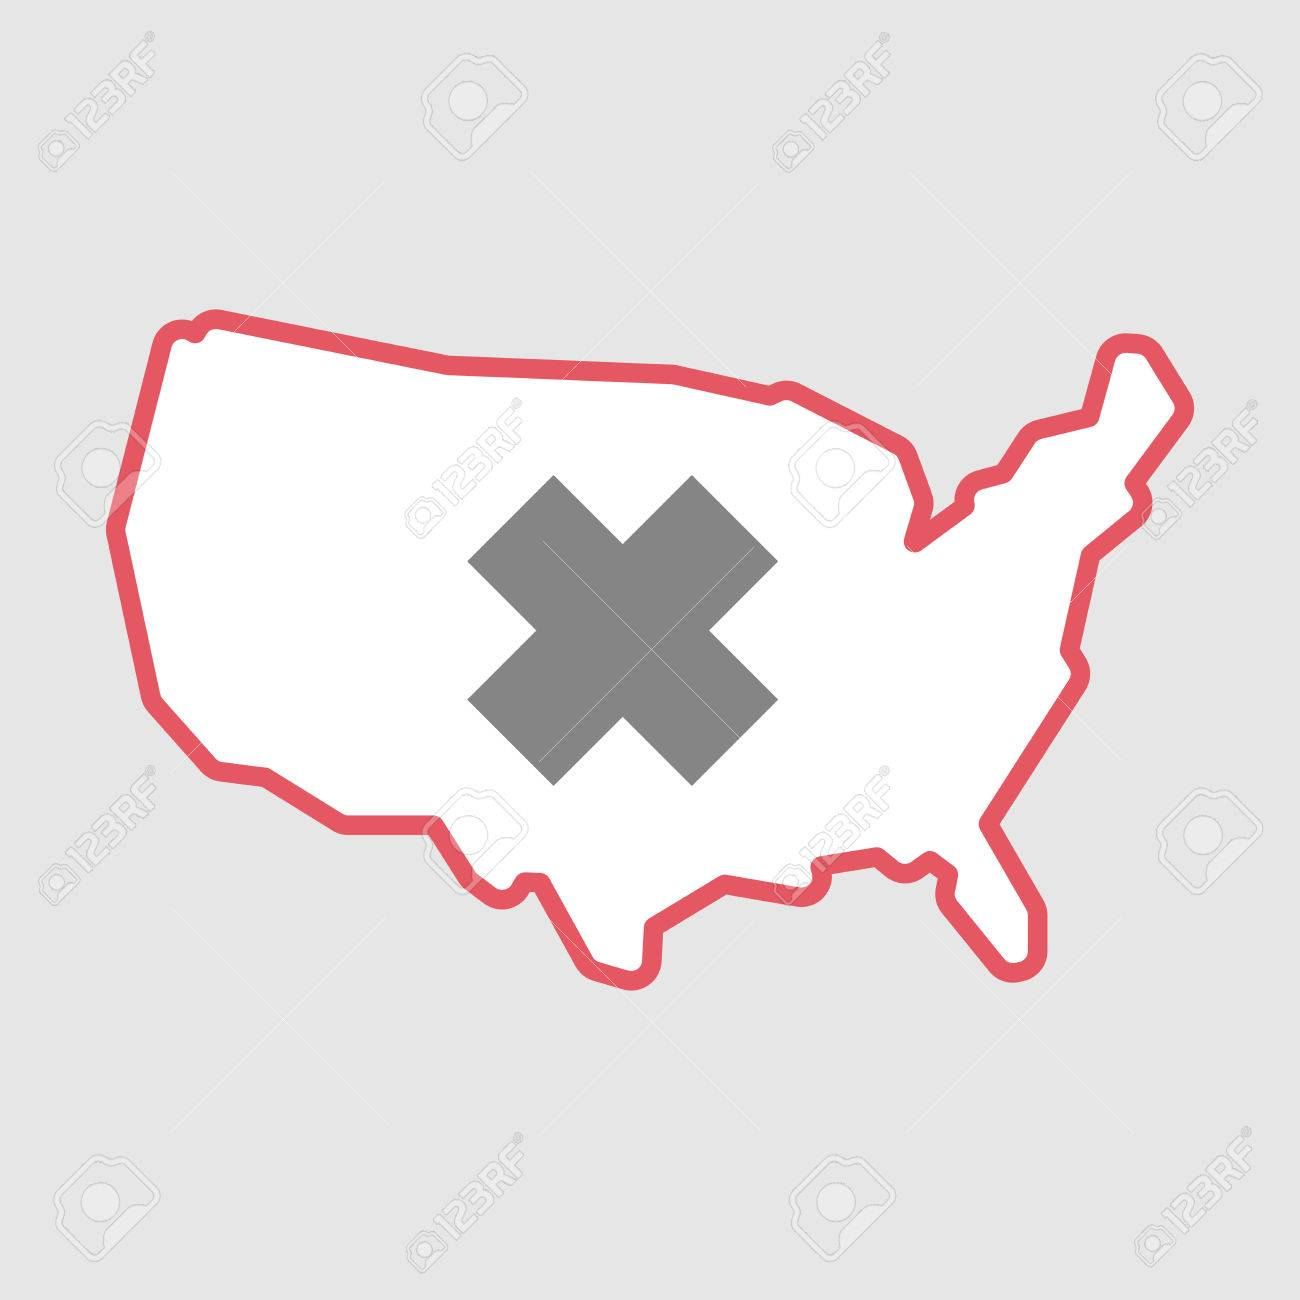 Illustration Of An Isolated Line Art Usa Map Icon With Cross